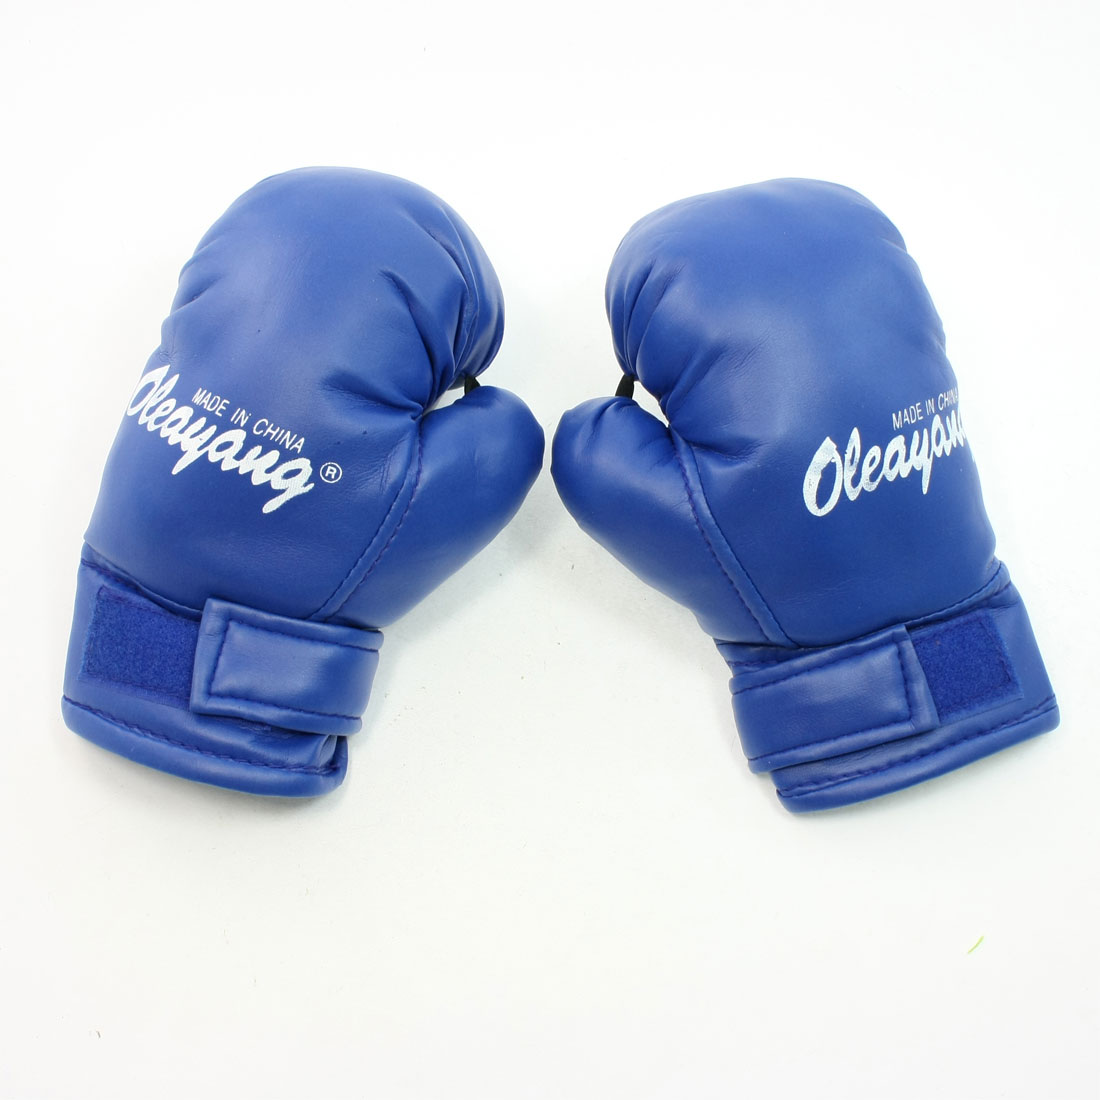 Blue Inside Sponge Faux Leather Sports Protetion Boxing Gloves for Kids